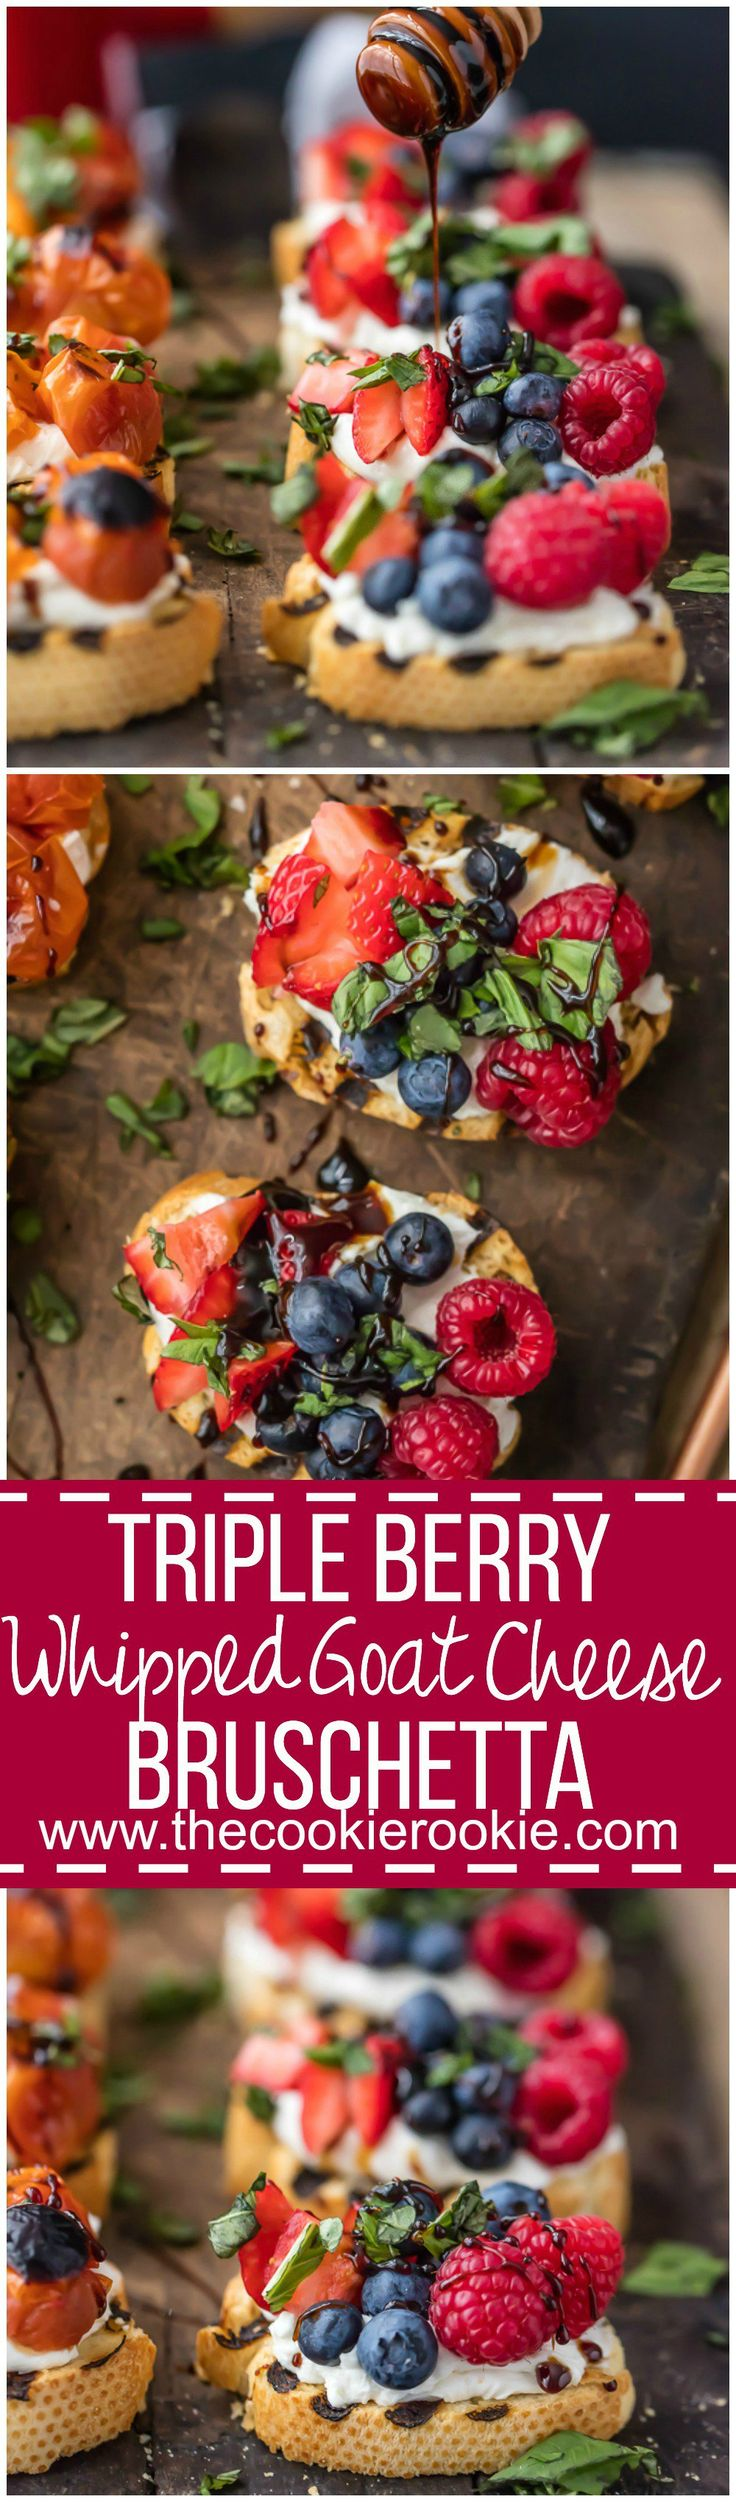 TRIPLE BERRY WHIPPED GOAT CHEESE BRUSCHETTA is beautiful and delicious!  Plus a Caprese Whipped Goat